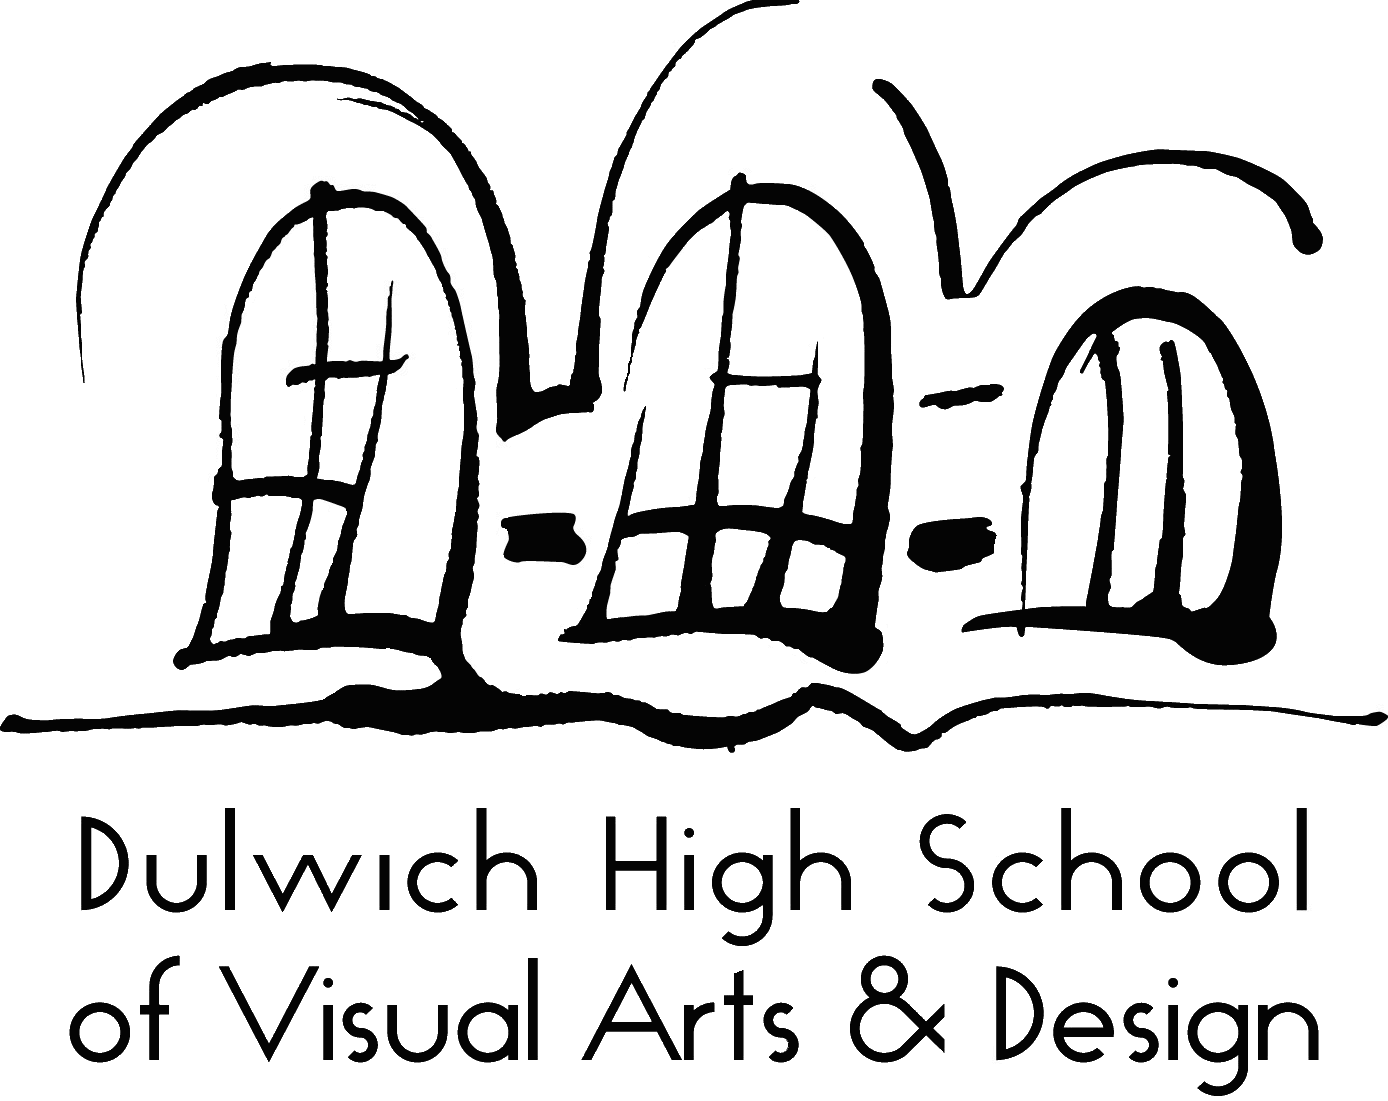 Dulwich High School of Visual Arts and Design logo